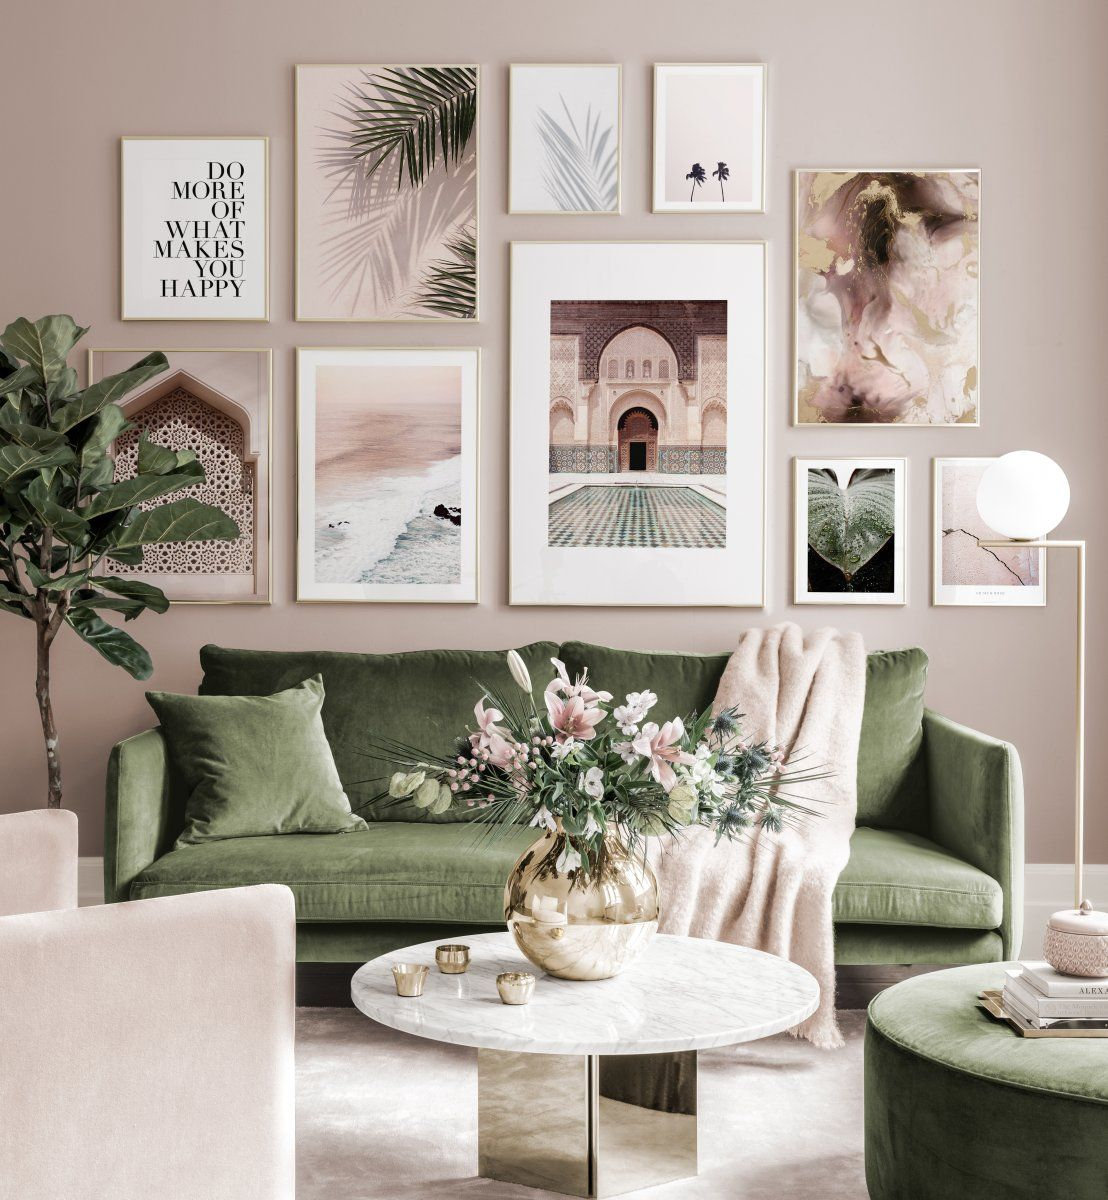 Beautiful Mediterranean Gallery Wall Pink Green Posters Golden Frames Gallery Wall Ins In 2020 Gallery Wall Inspiration Gallery Wall Living Room Living Room Pictures #photo #frames #living #room